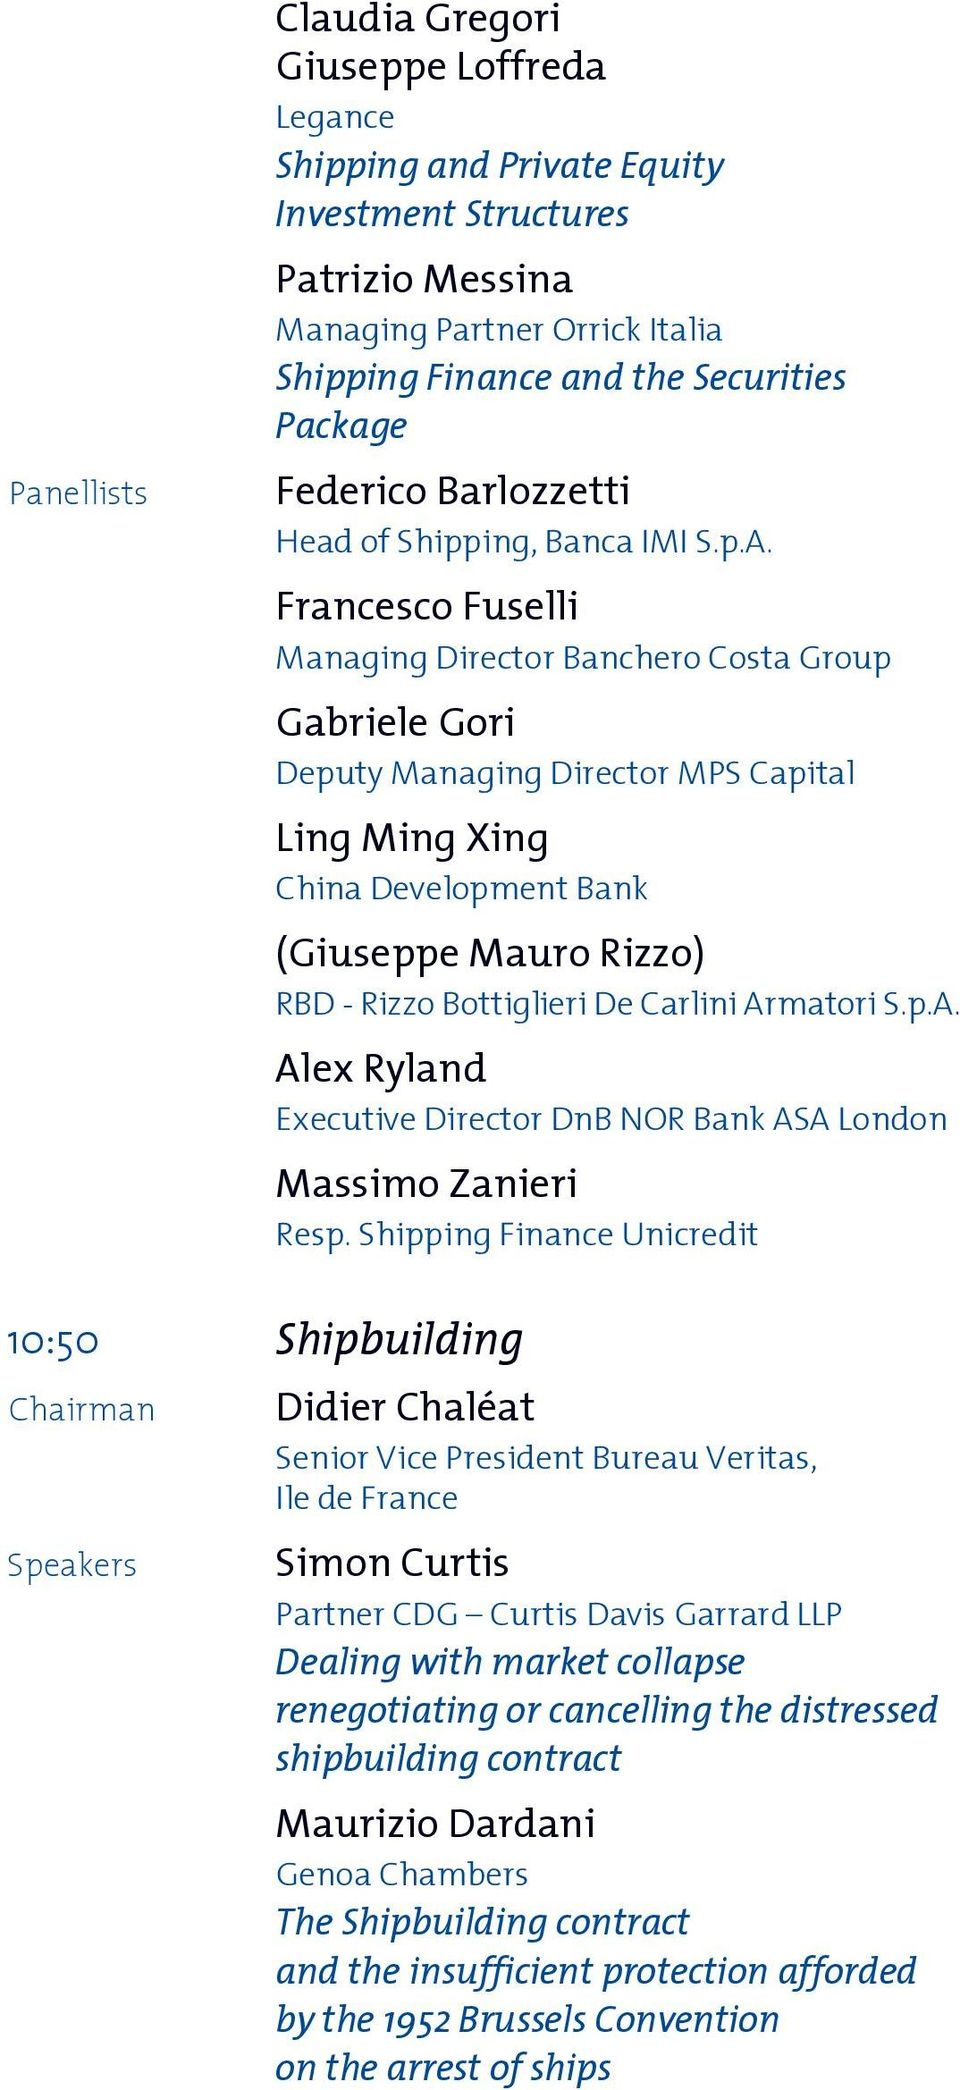 Francesco Fuselli Managing Director Banchero Costa Group Gabriele Gori Deputy Managing Director MPS Capital Ling Ming Xing China Development Bank (Giuseppe Mauro Rizzo) RBD - Rizzo Bottiglieri De